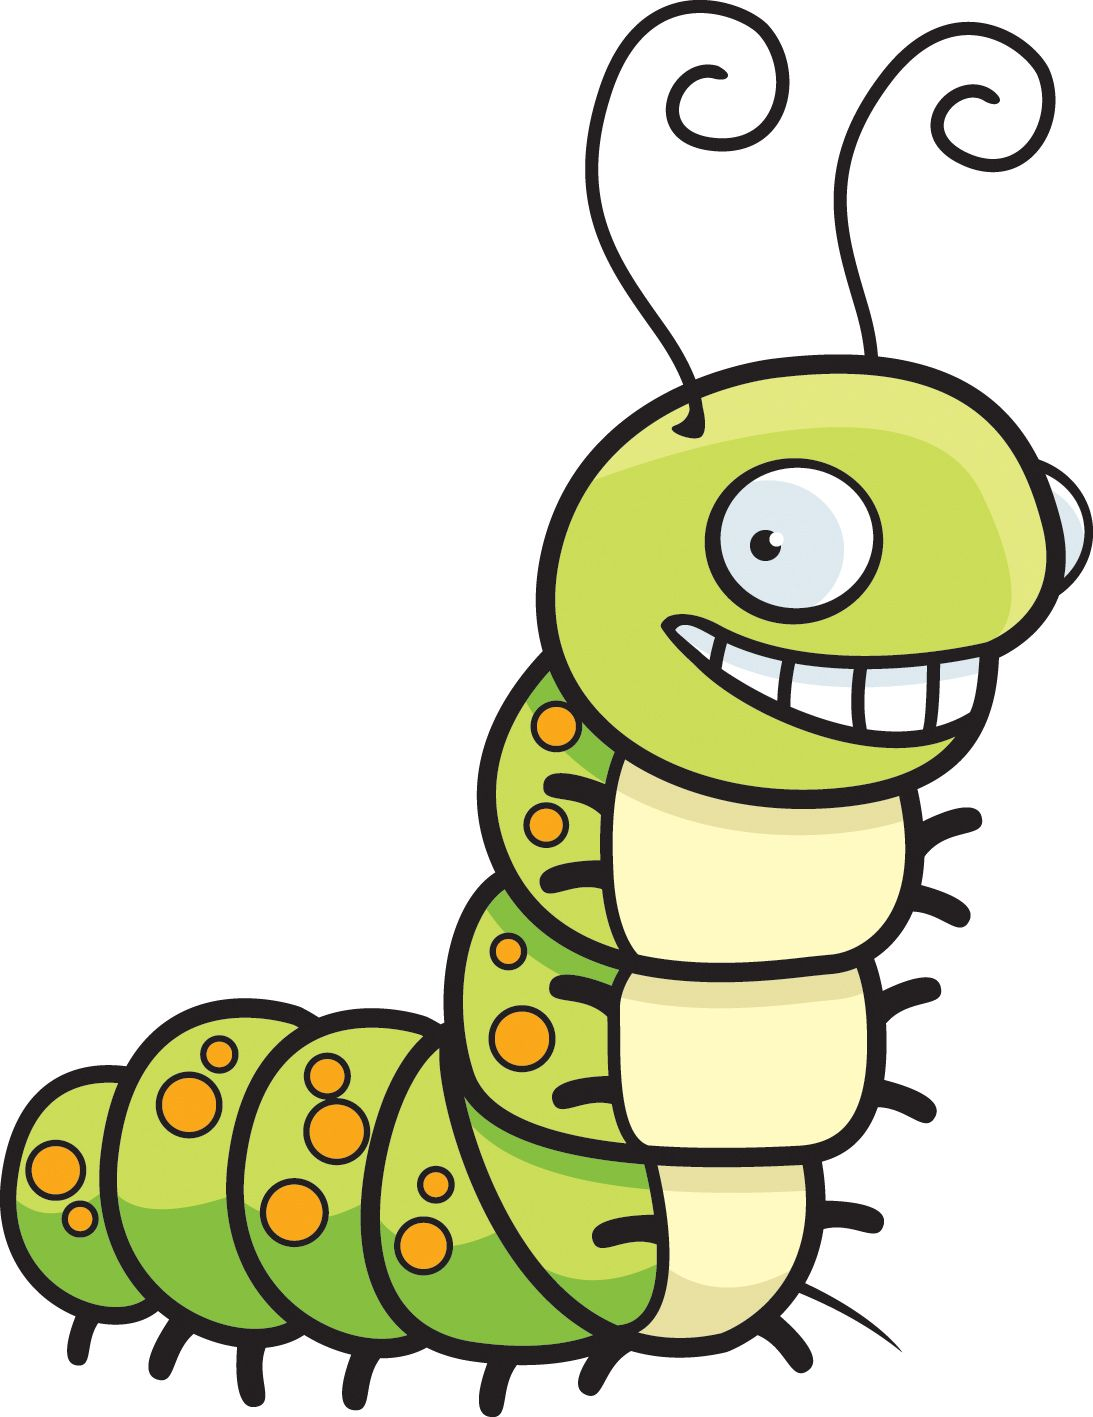 caterpillar butterfly clipart.